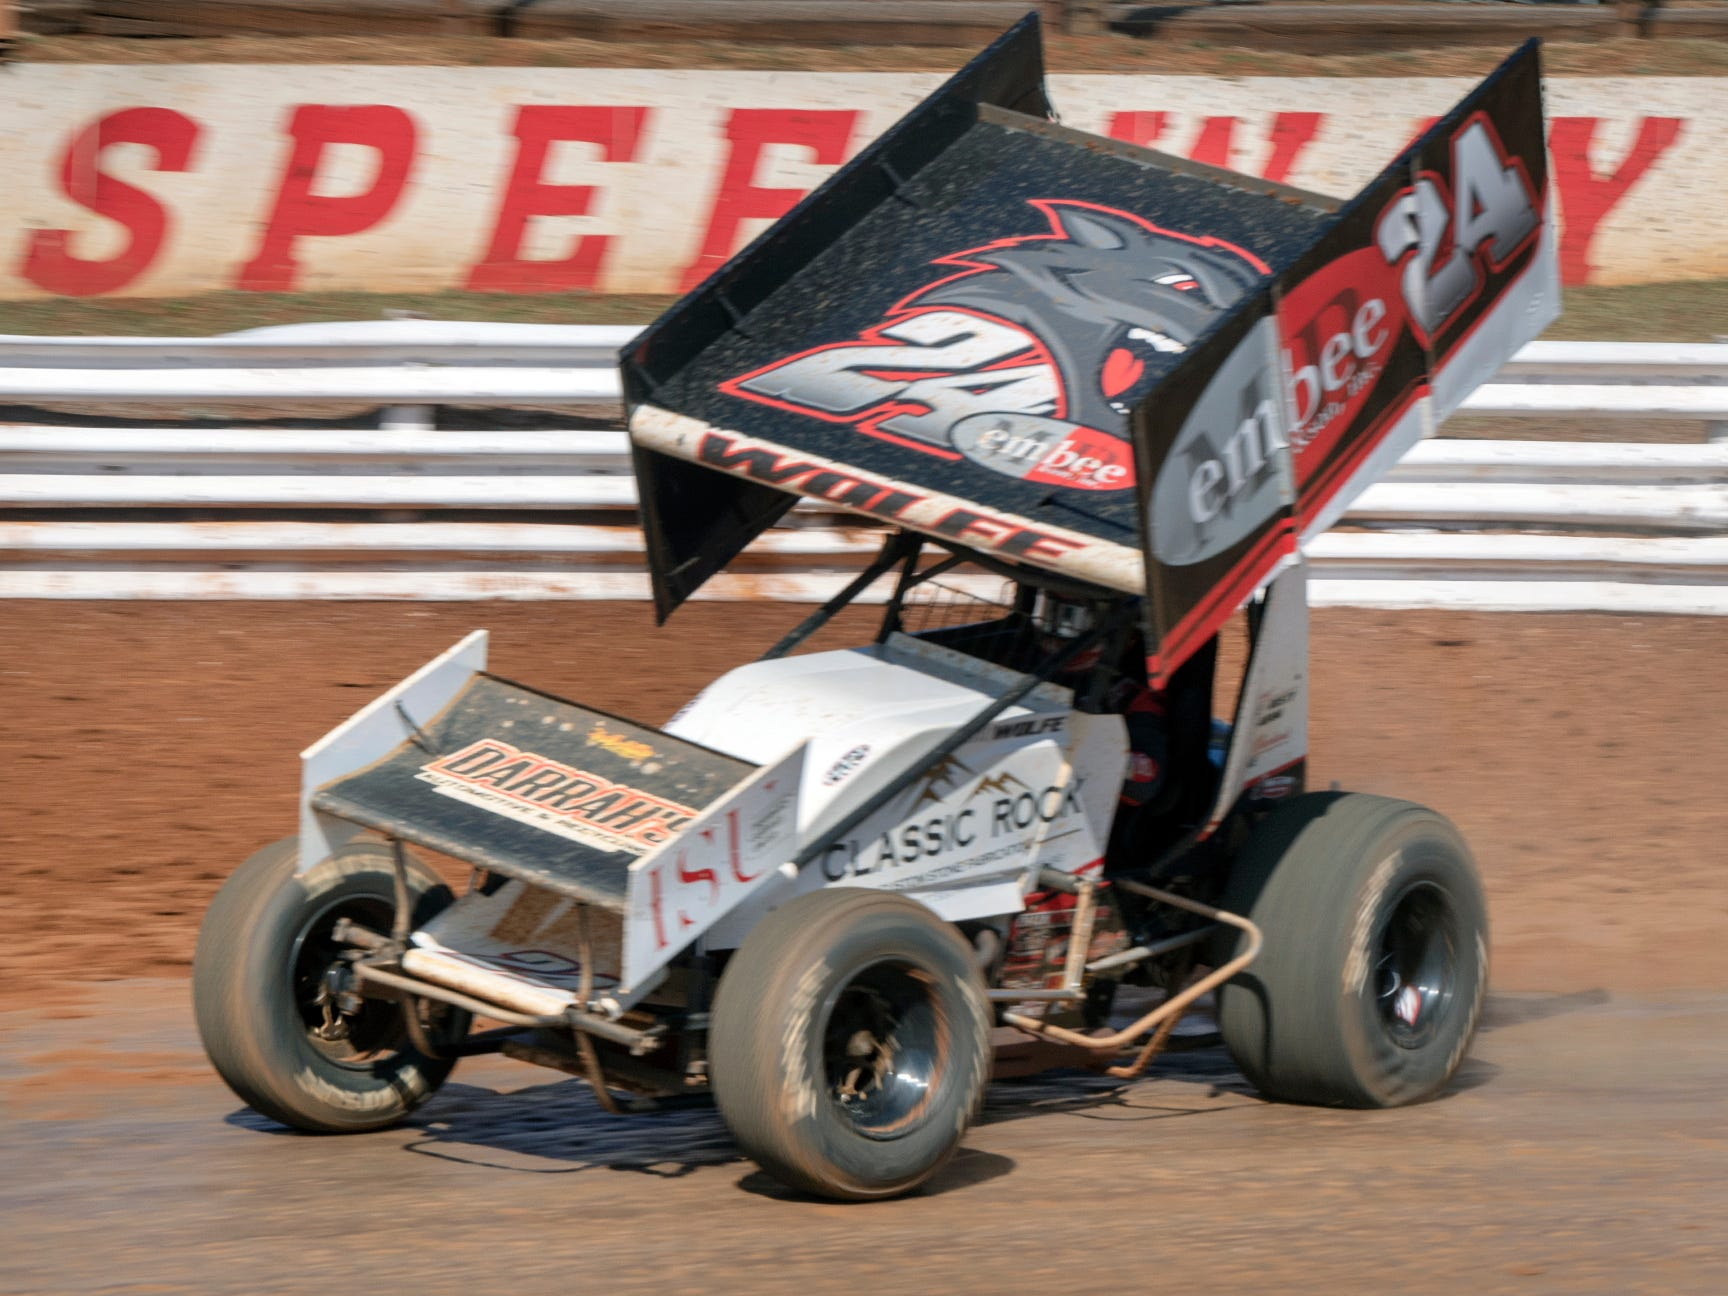 The #24 car driven by Lucas Wolfe takes a turn during the Williams Grove season opener for 410 sprints Sunday March 17, 2019. Wolfe won the race.